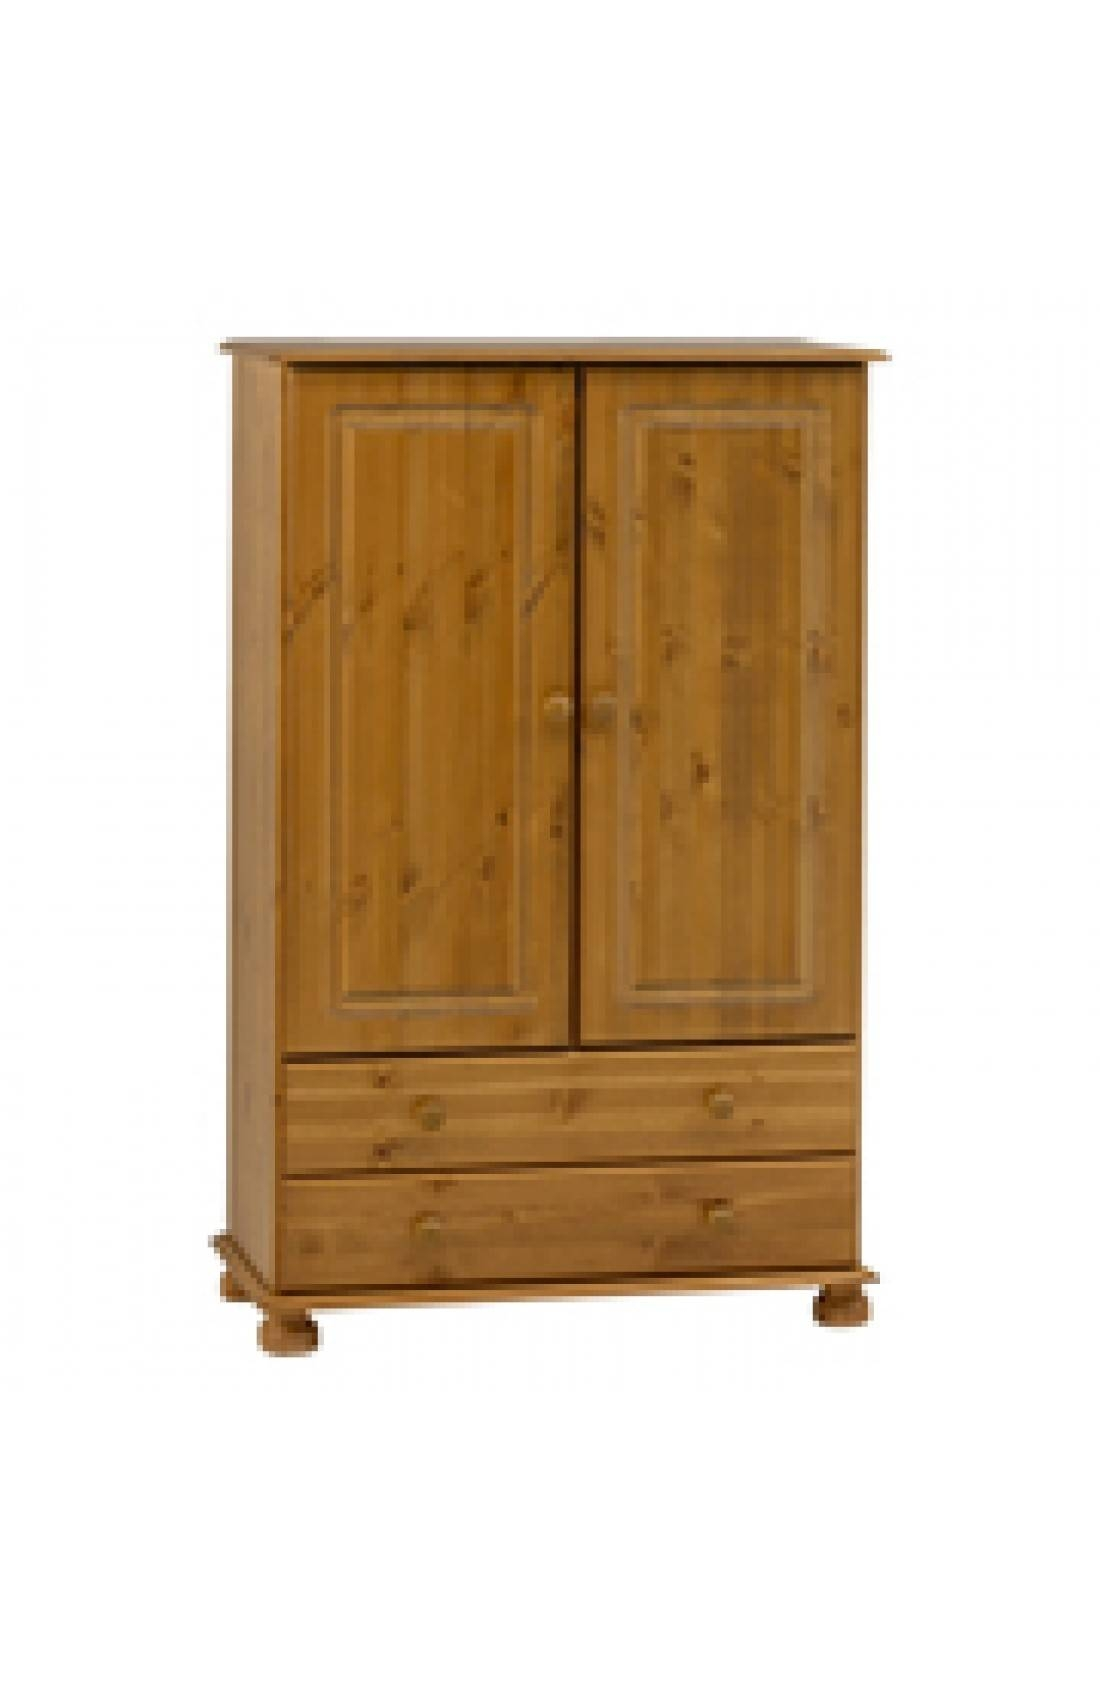 Richmond 2 Door 2 Drawer Short Low Tallboy Wardrobe - Pine intended for Small Tallboy Wardrobes (Image 9 of 15)